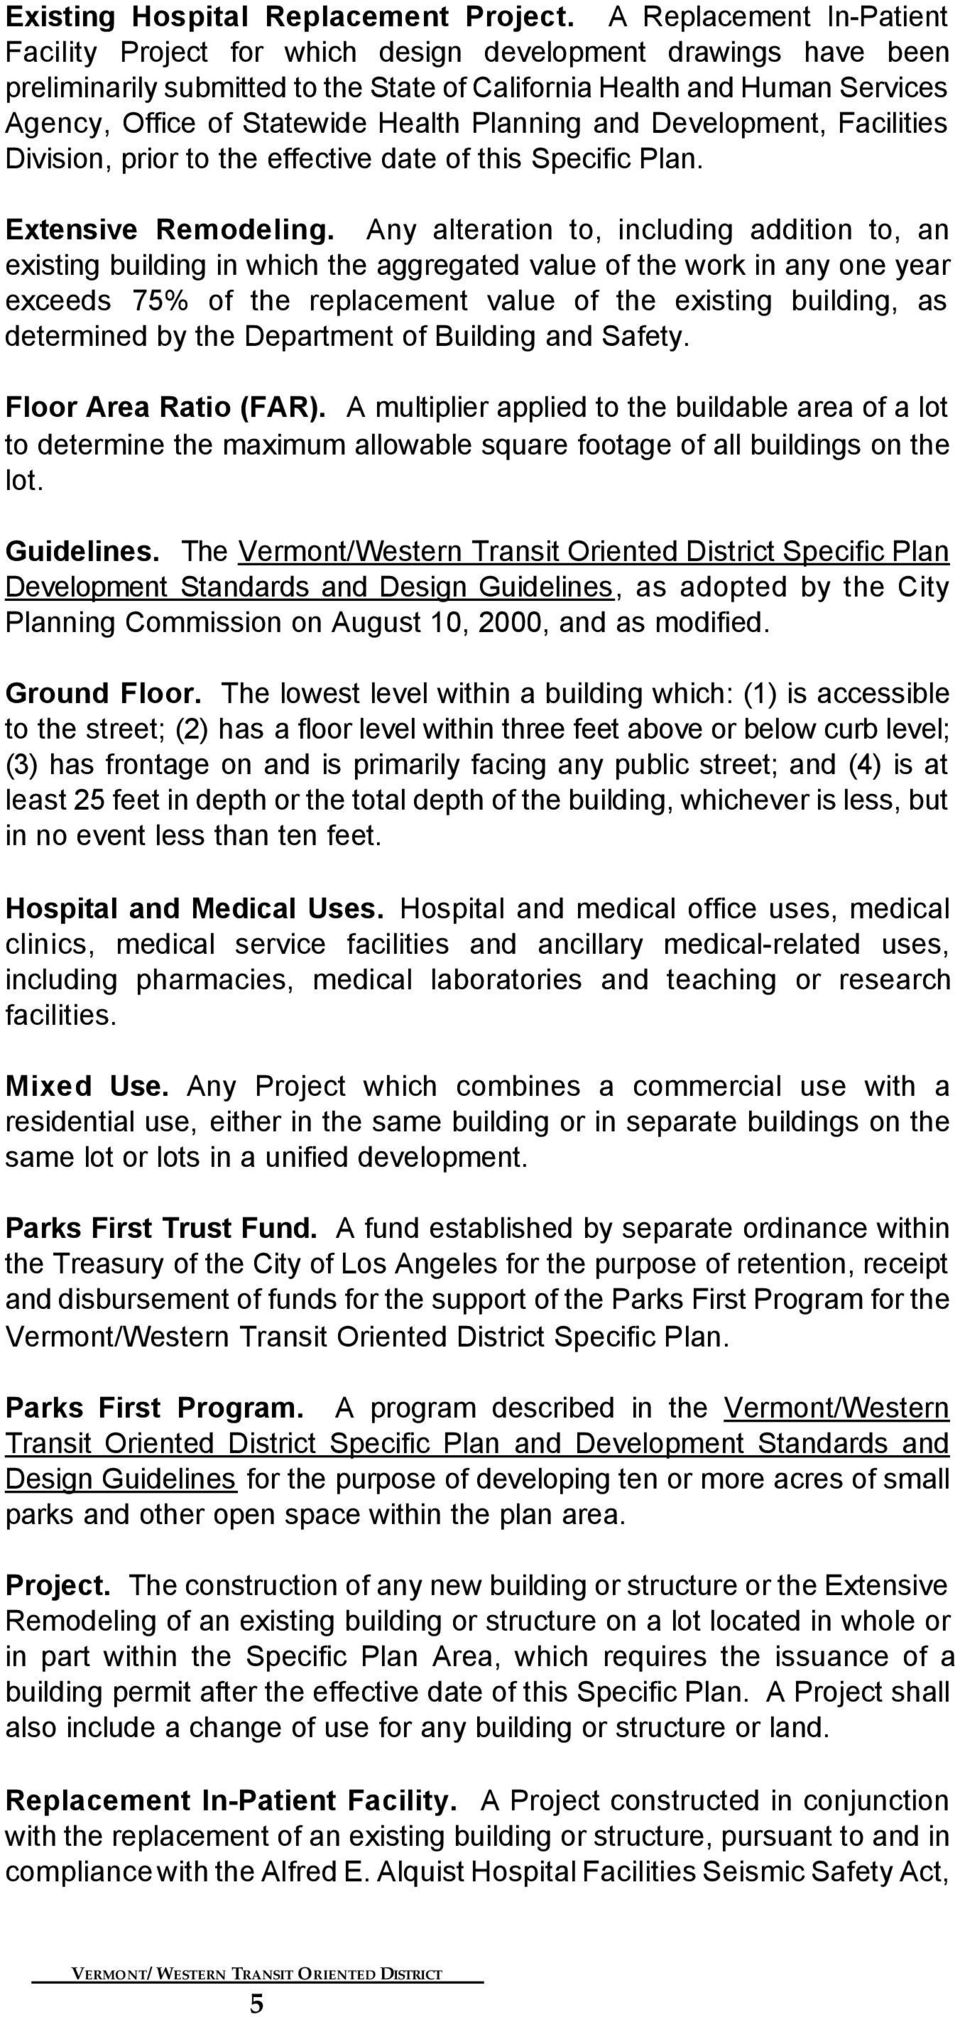 Health Planning and Development, Facilities Division, prior to the effective date of this Specific Plan. Extensive Remodeling.